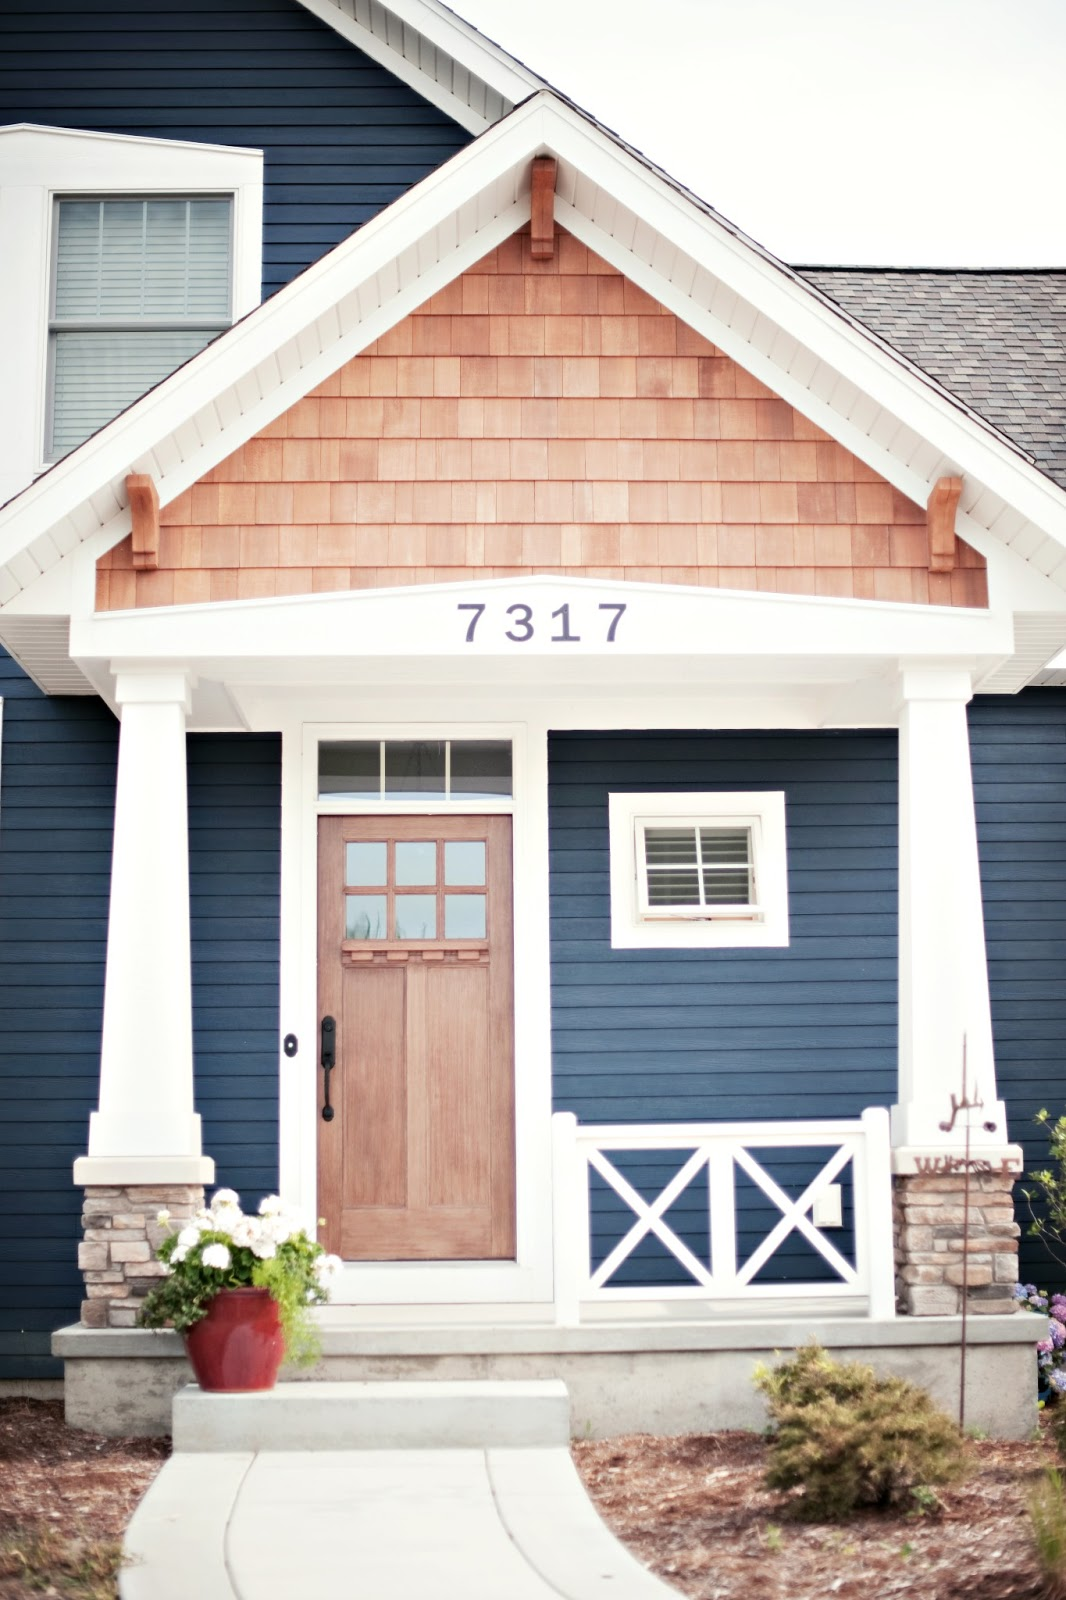 Lisa mende design best navy blue paint colors 8 of my favs for House colors exterior pictures